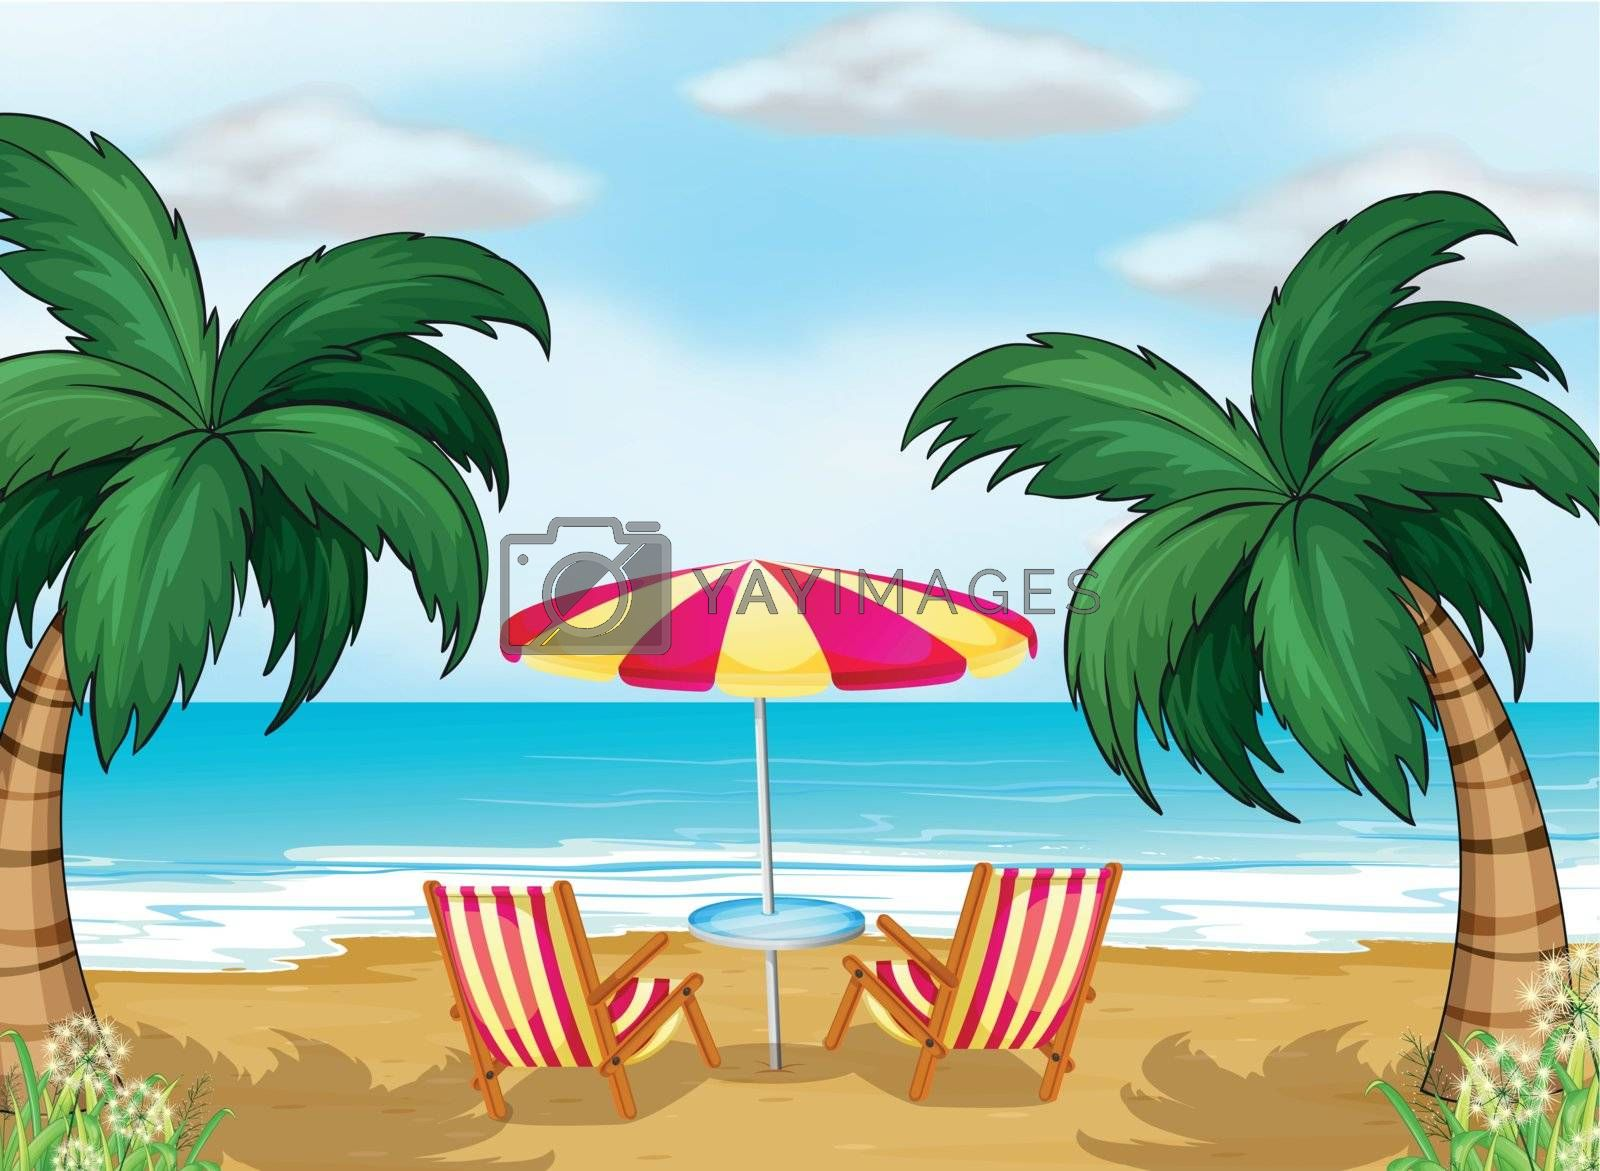 Illustration of the view of the beach with a beach umbrella and chairs